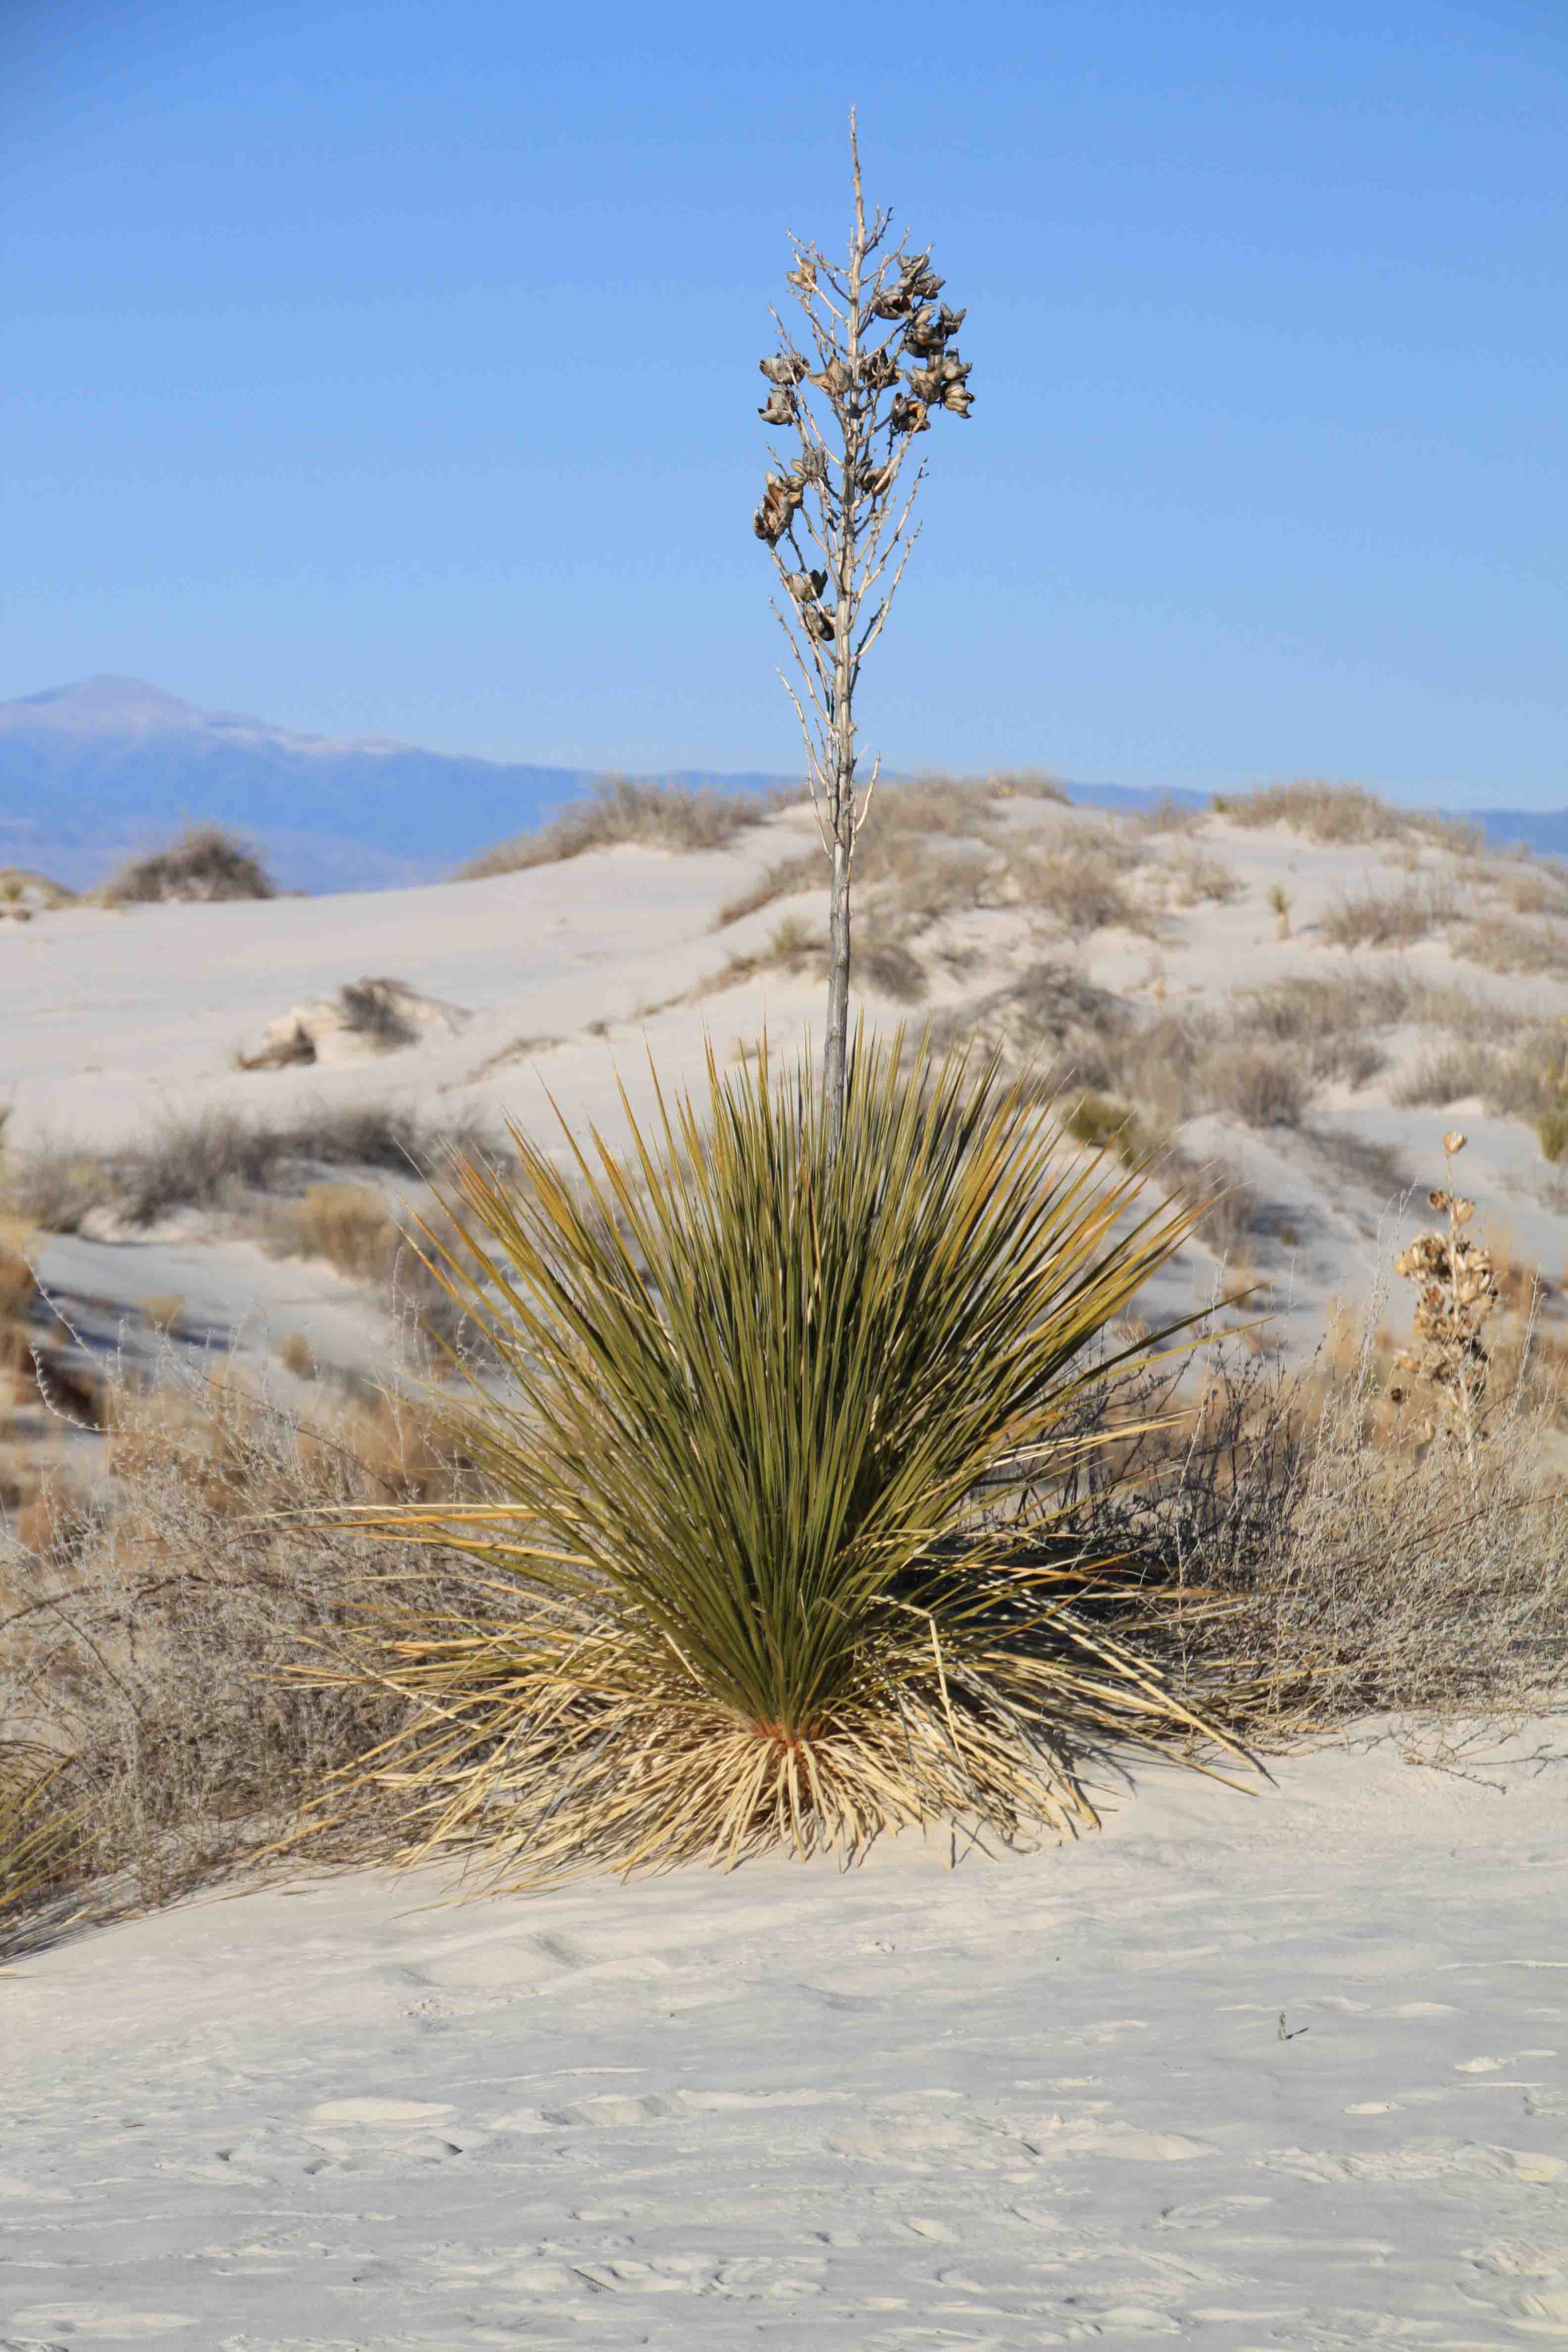 cactus at white sands national monument